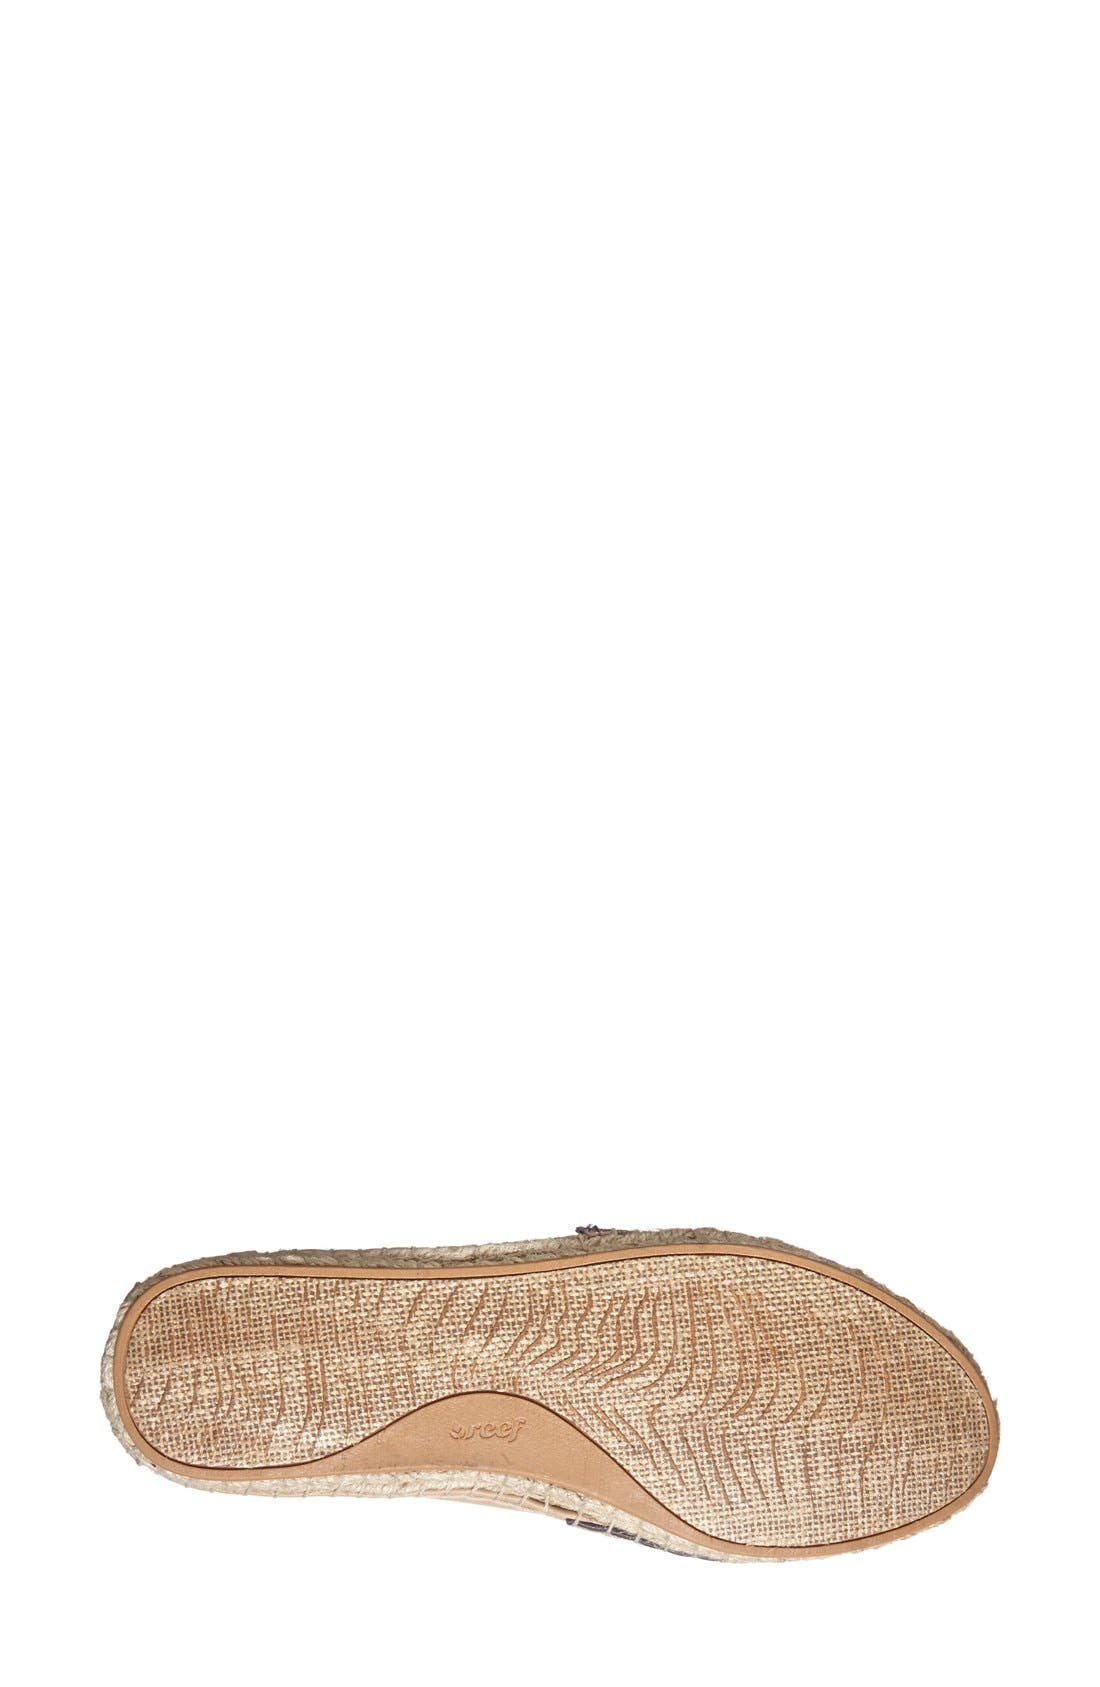 Alternate Image 4  - Reef 'Shaded Summer' Espadrille Flat (Women)